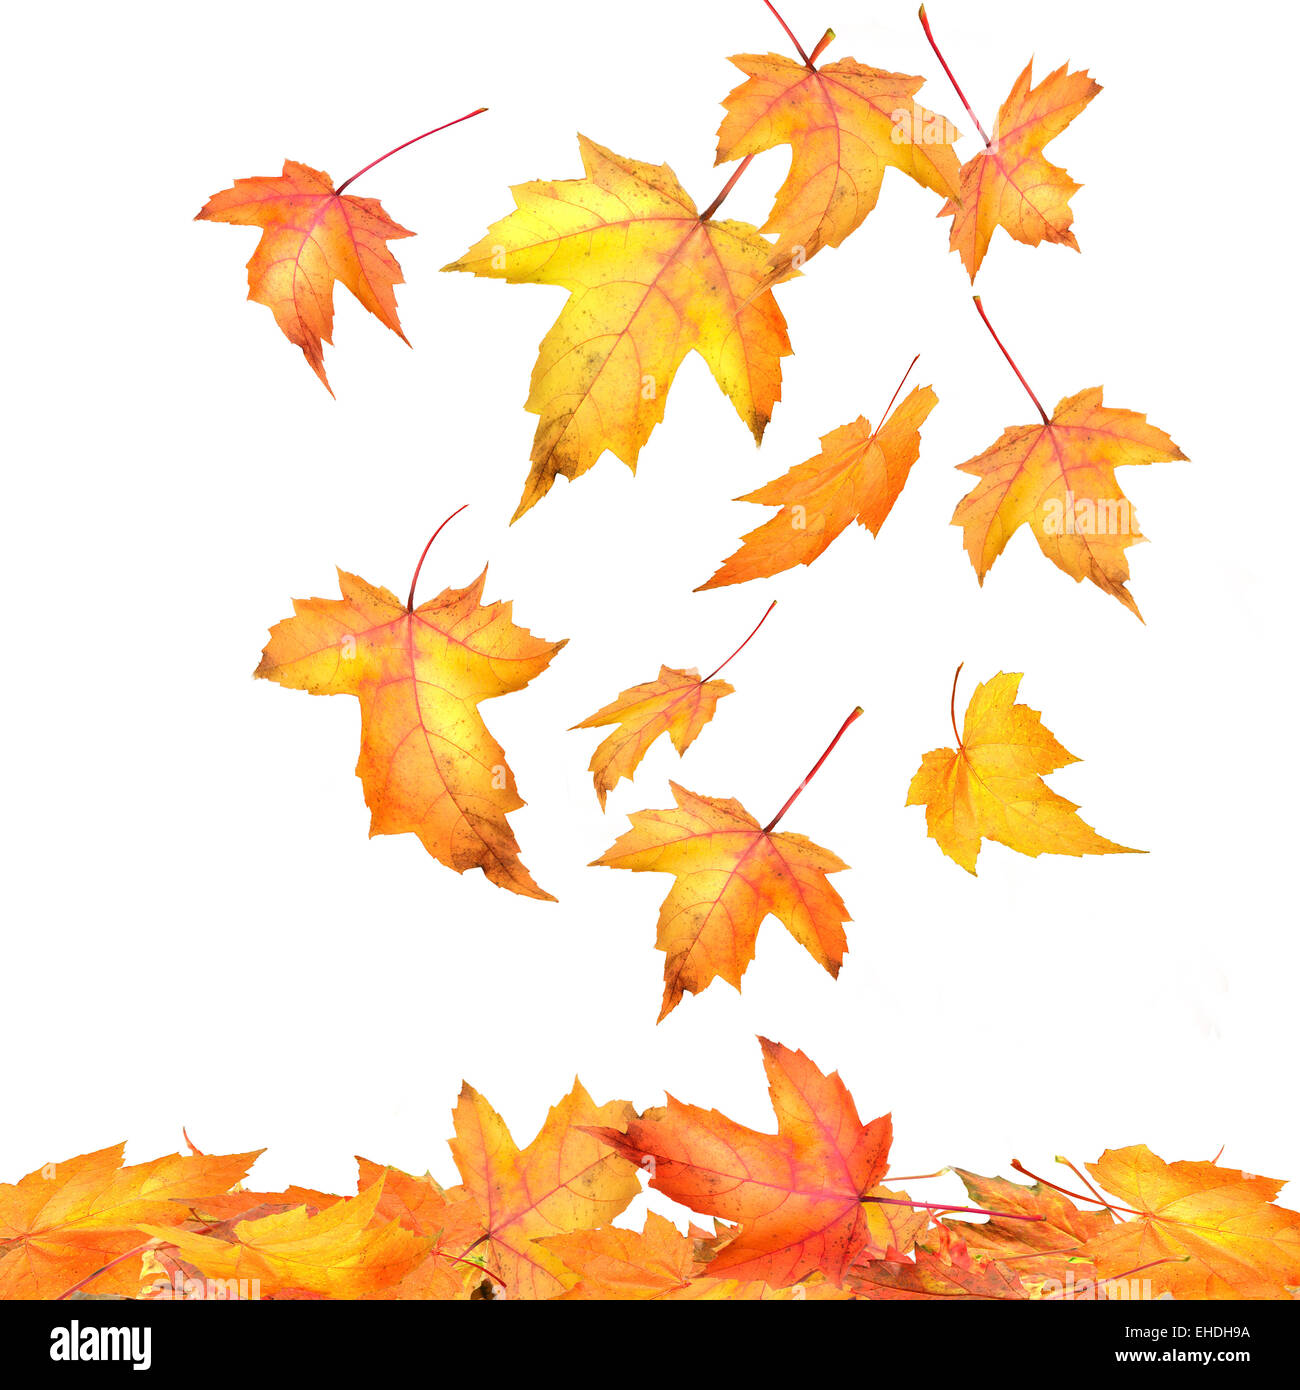 falling leaves stock photos falling leaves stock images alamy